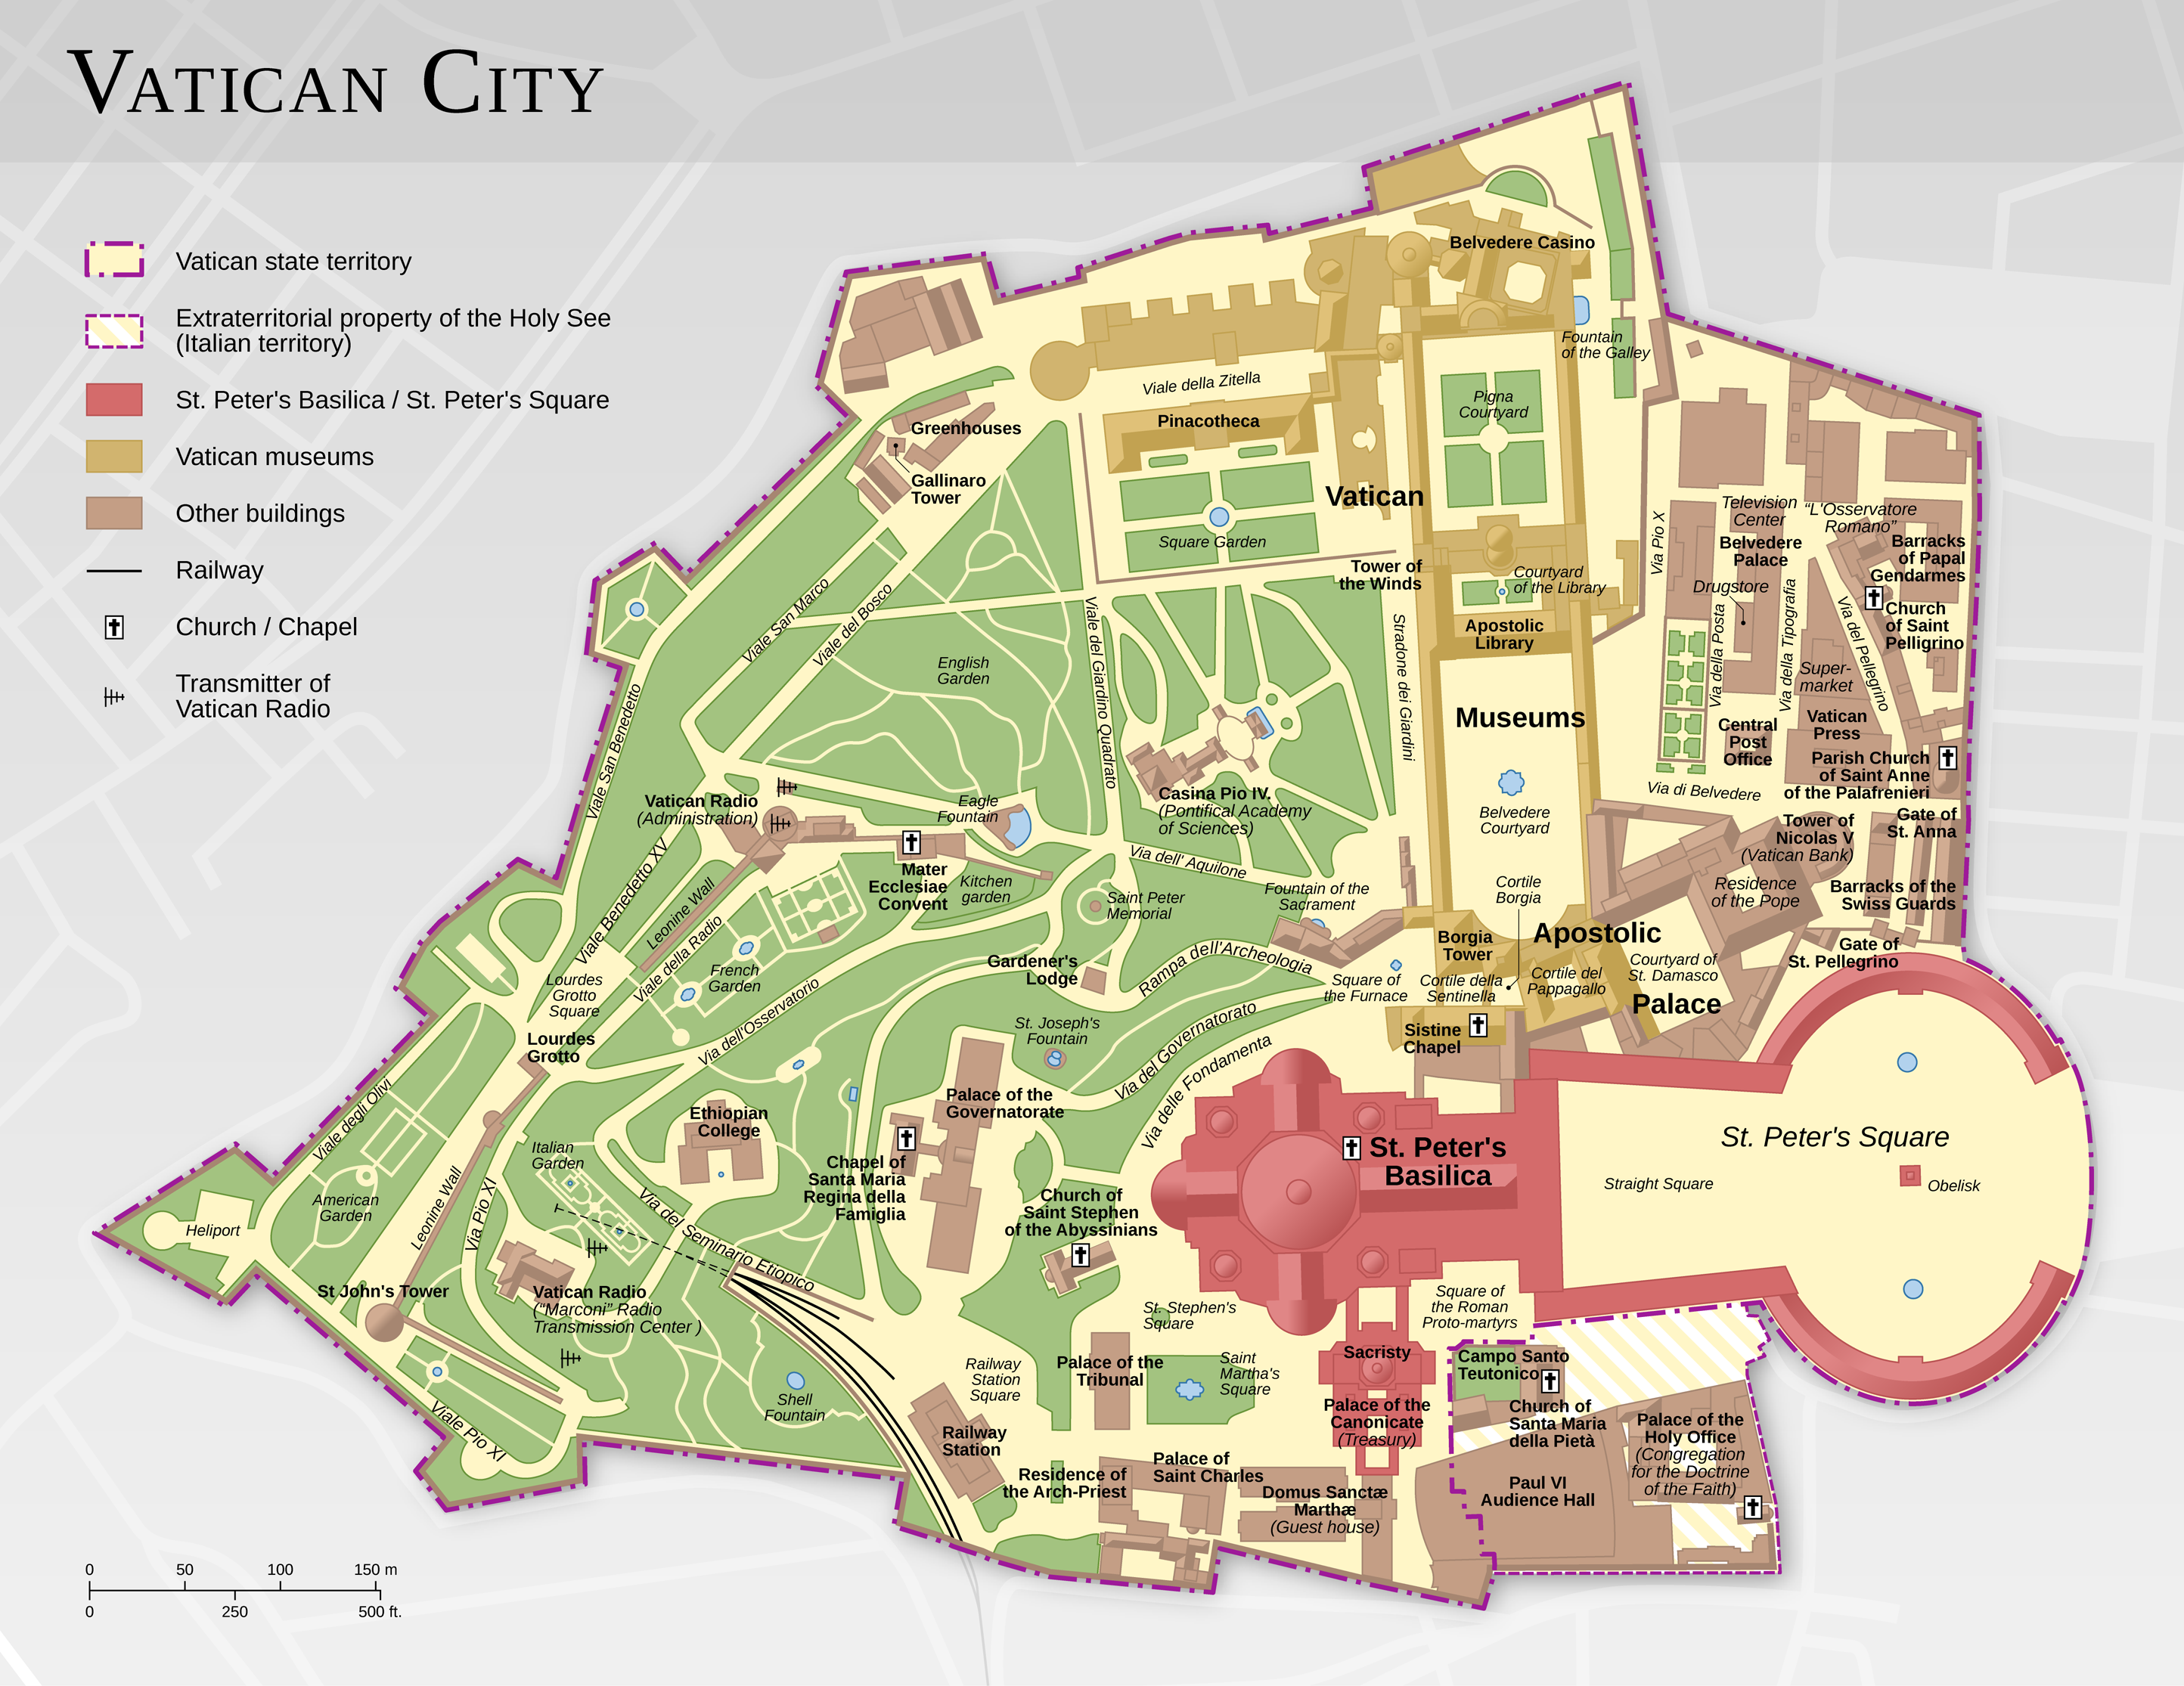 Map of Vatican City, highlighting notable buildings and the Vatican gardens.